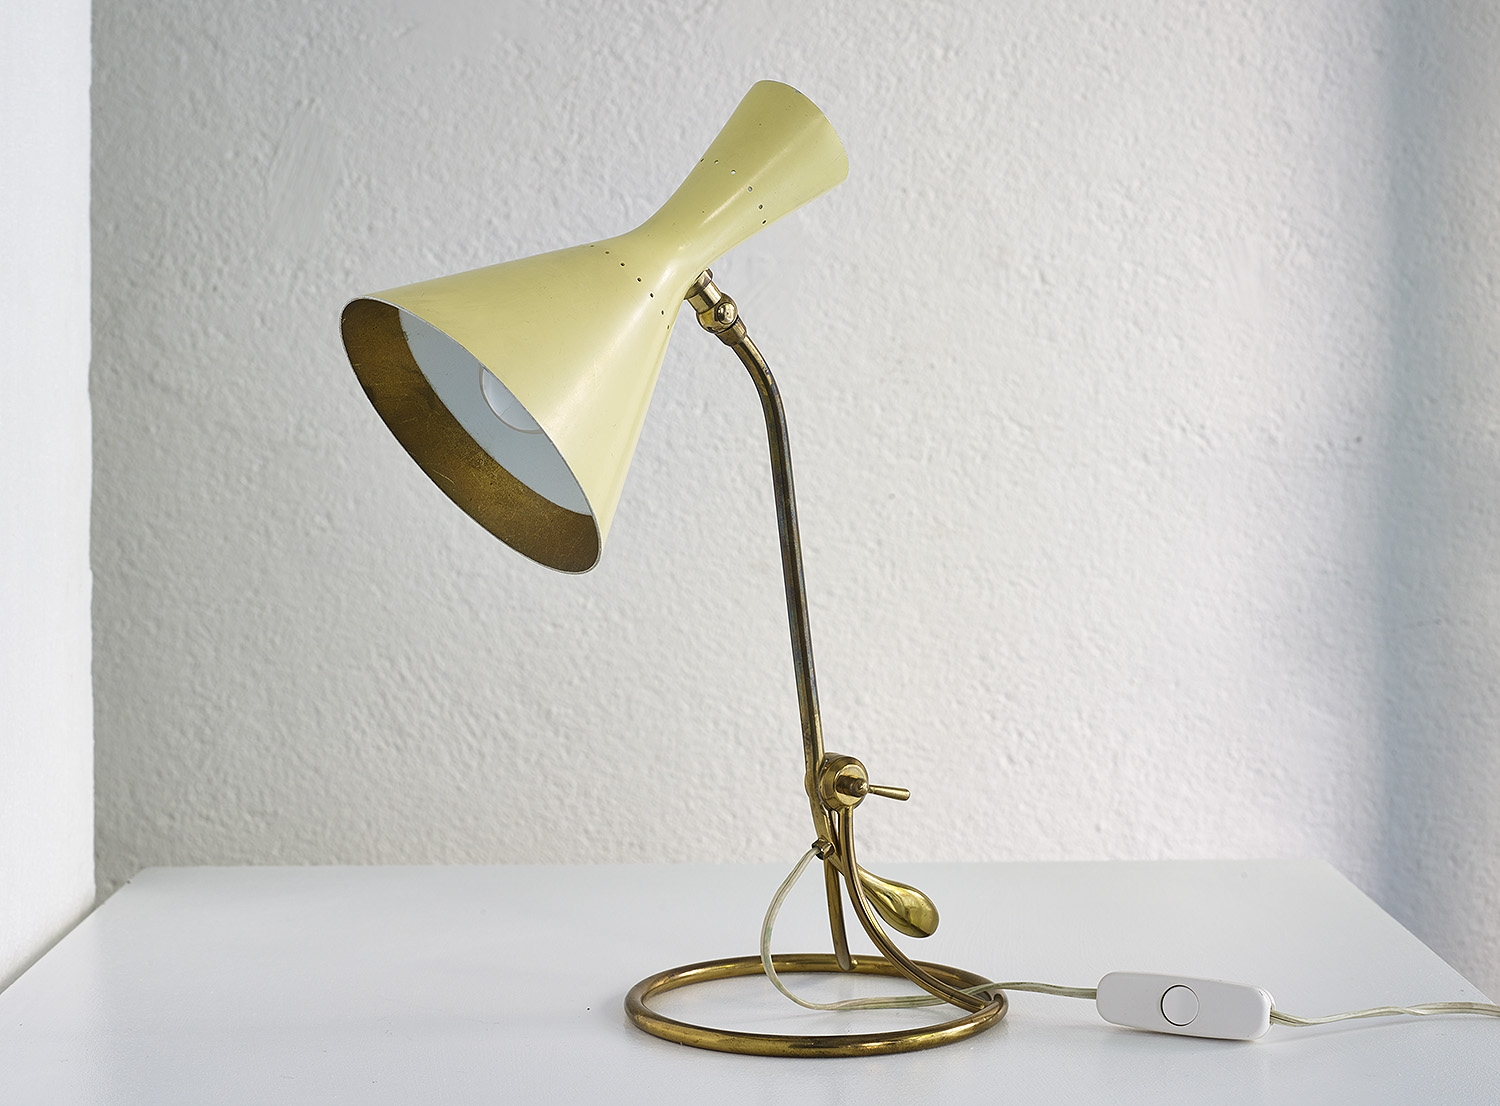 counterweight-table-lamp-by-baumann-kolliker-image-01